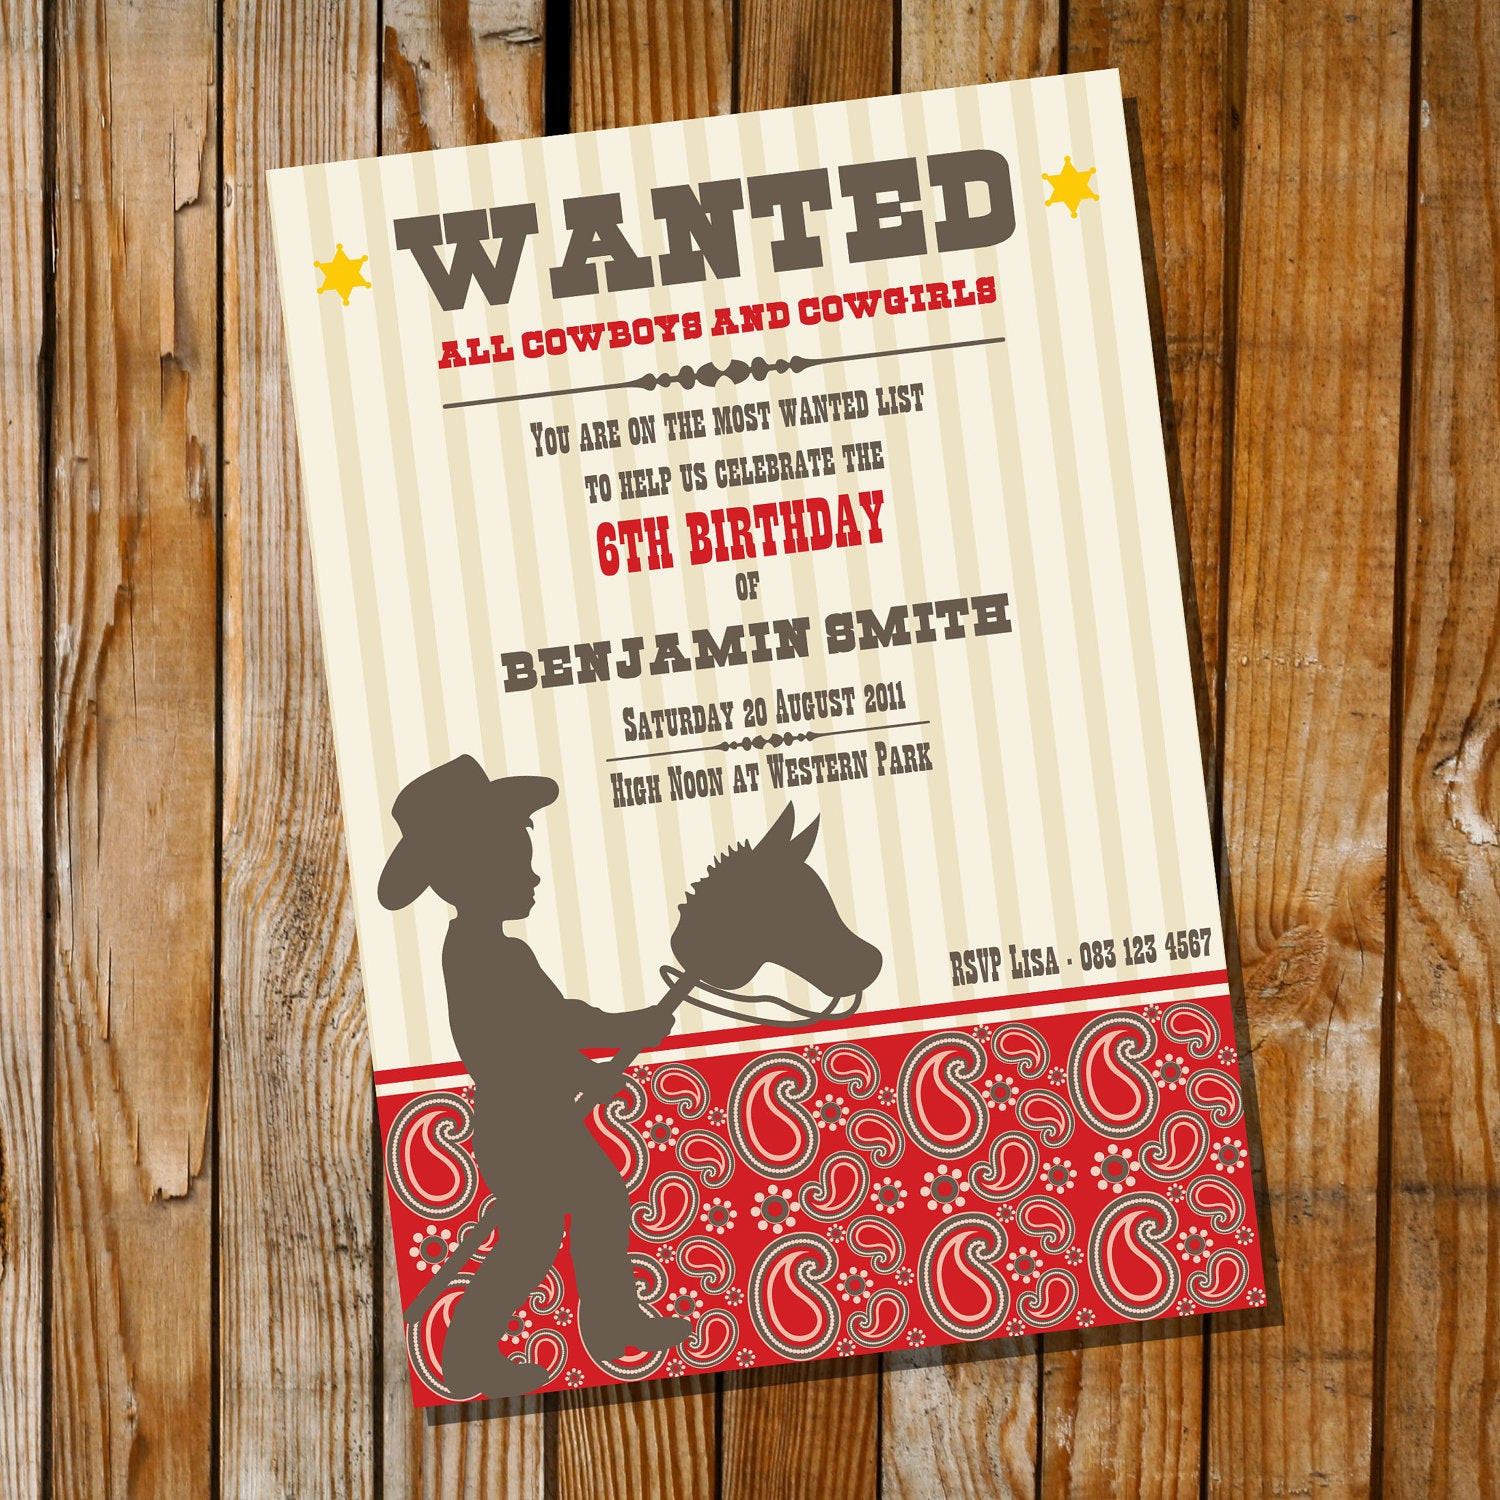 Best ideas about Cowboy Birthday Invitations . Save or Pin Little Cowboy Birthday Party Invitation ly Instantly Now.